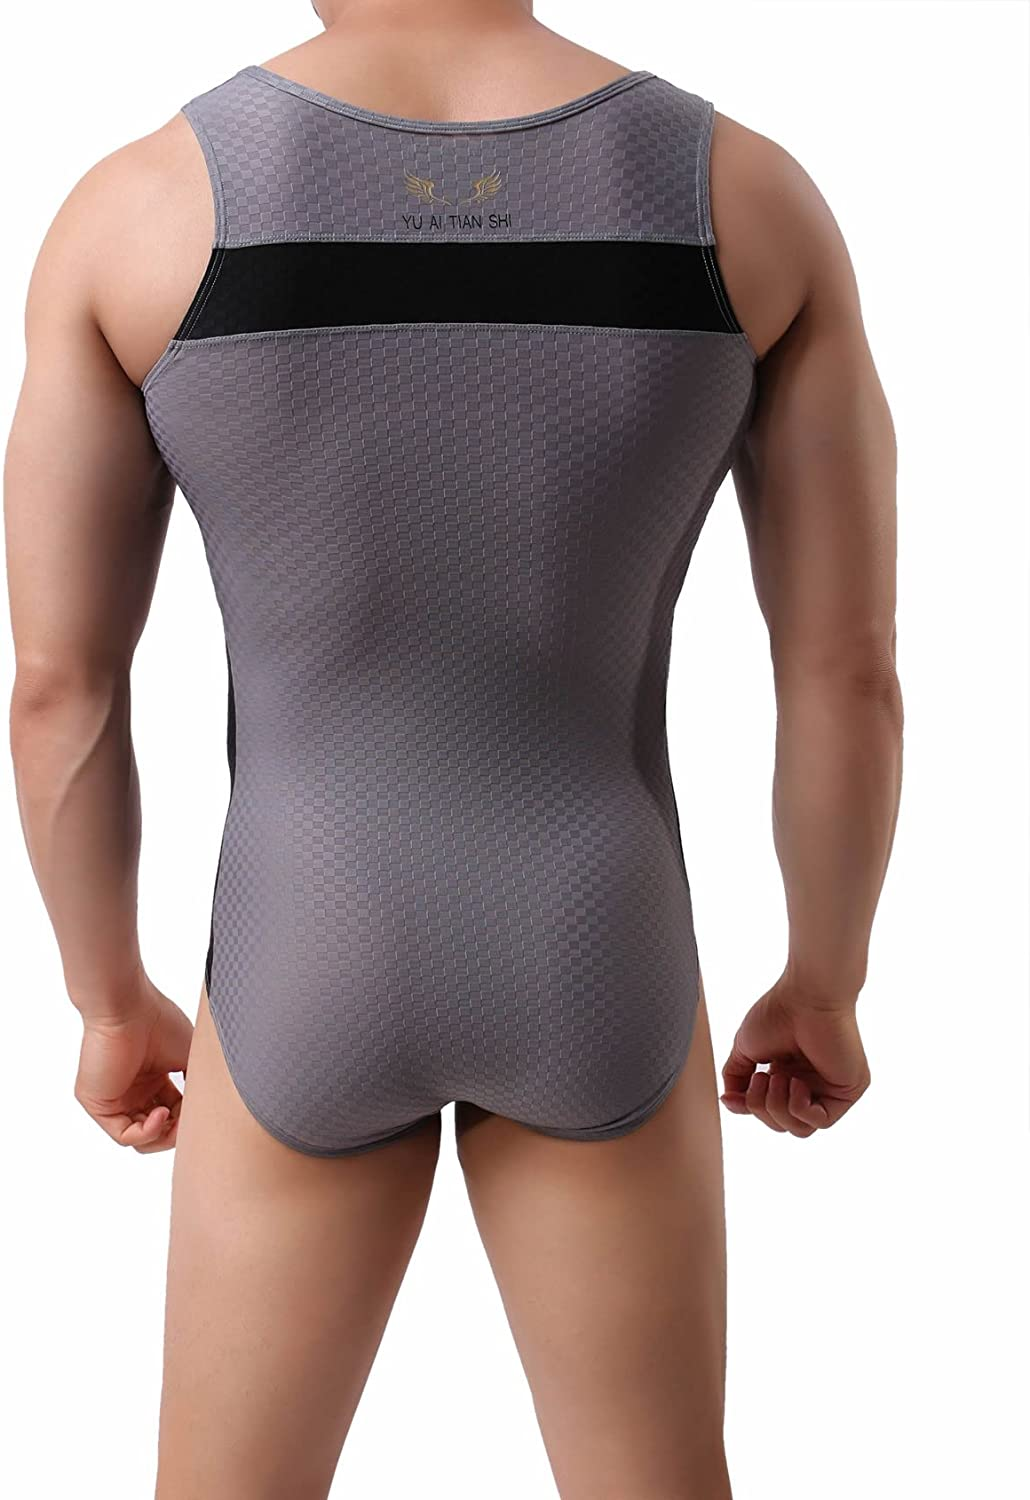 Cycling 2241 BRAVE PERSON Mens Figure-Shape Bodysuits Elastic Workout Clothes Swimwear XL // 33-38, 001- Gray Fitness